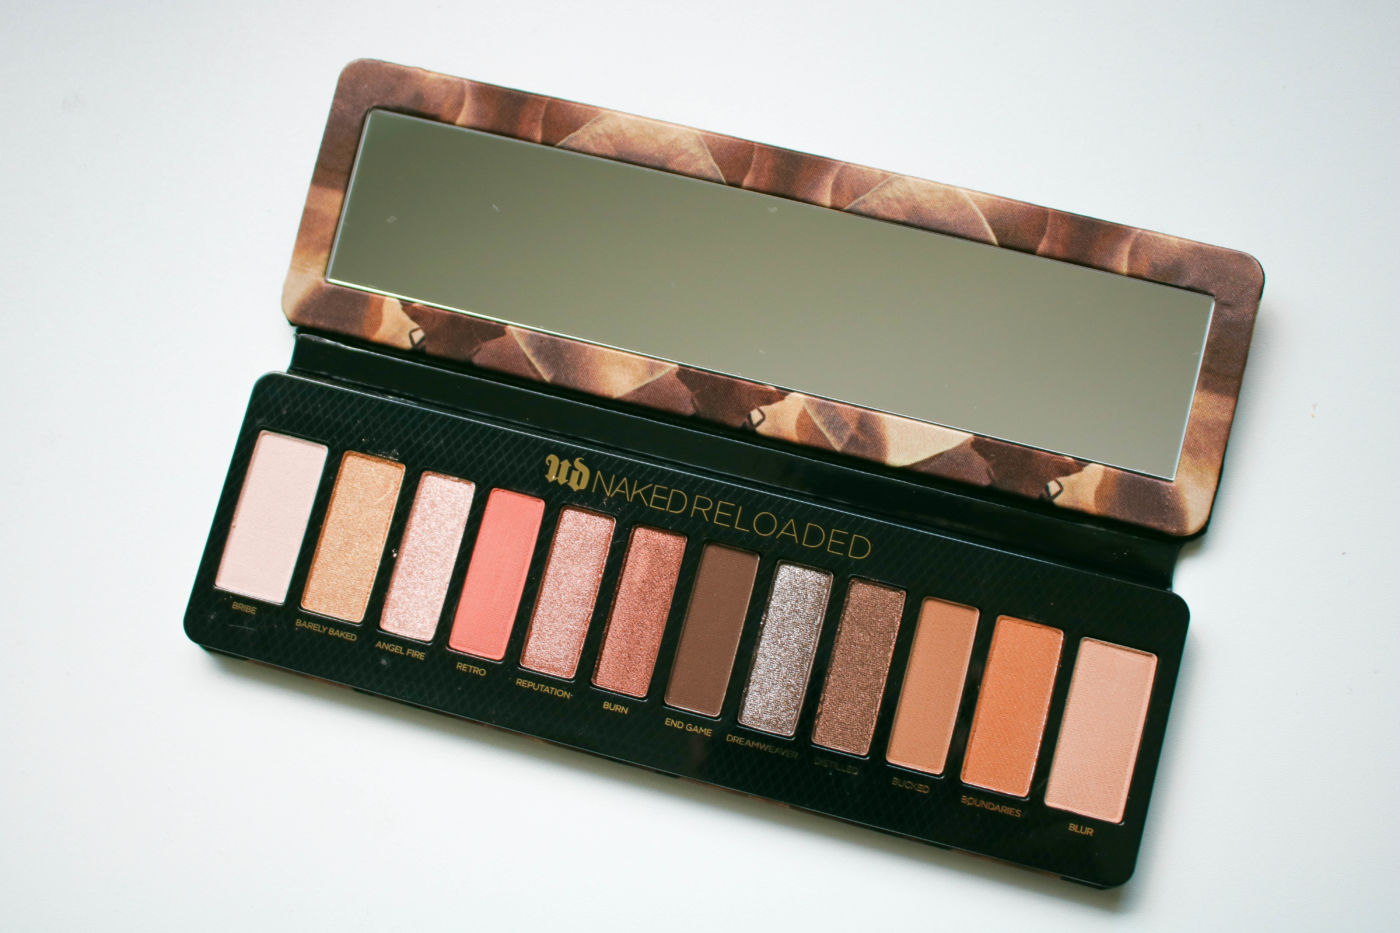 urban decay naked reloaded, urban decay naked reloaded swatches, new naked palette, naked dupe, new eyeshadow palette 2019, urban decay eyeshadow, new naked palette, neutral eyeshadow palette, new beauty launches 2019